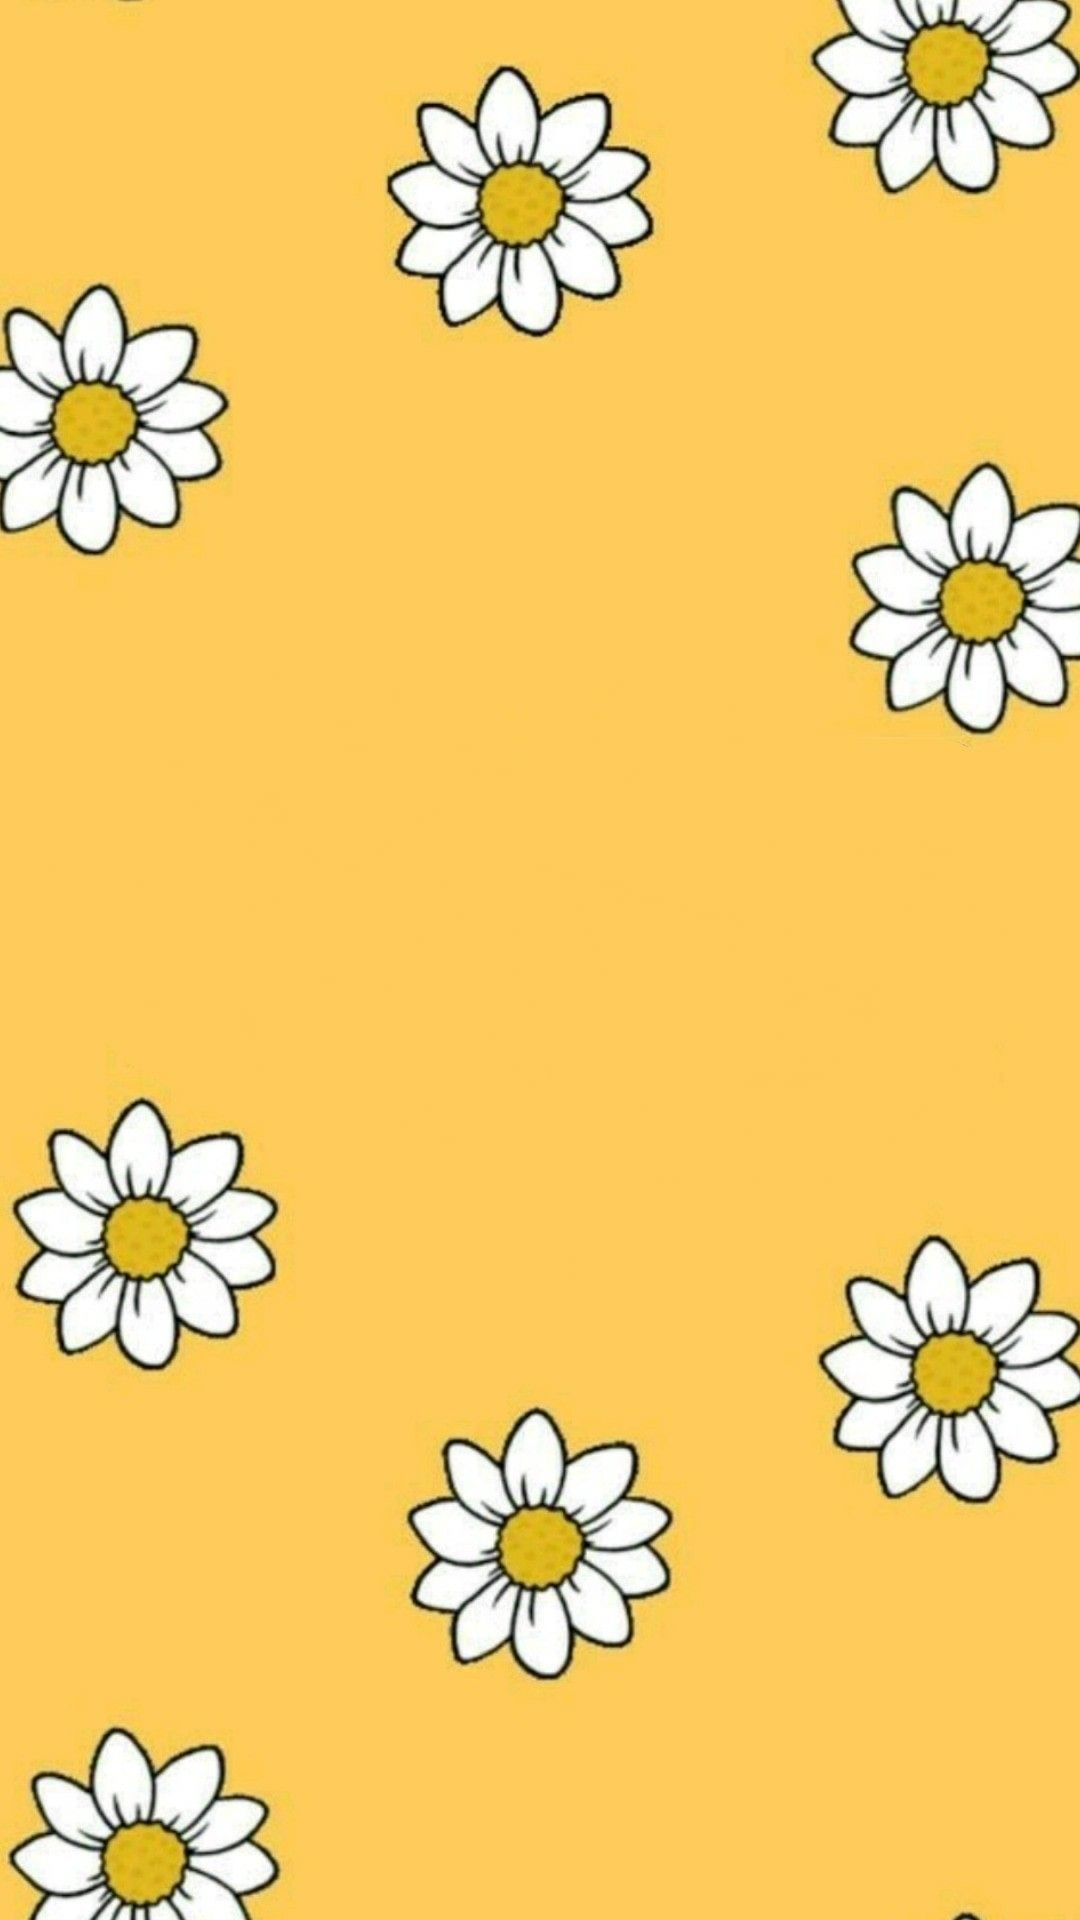 Pin By Brianna On Fondos Iphone Wallpaper Yellow Iphone Background Wallpaper Yellow Wallpaper